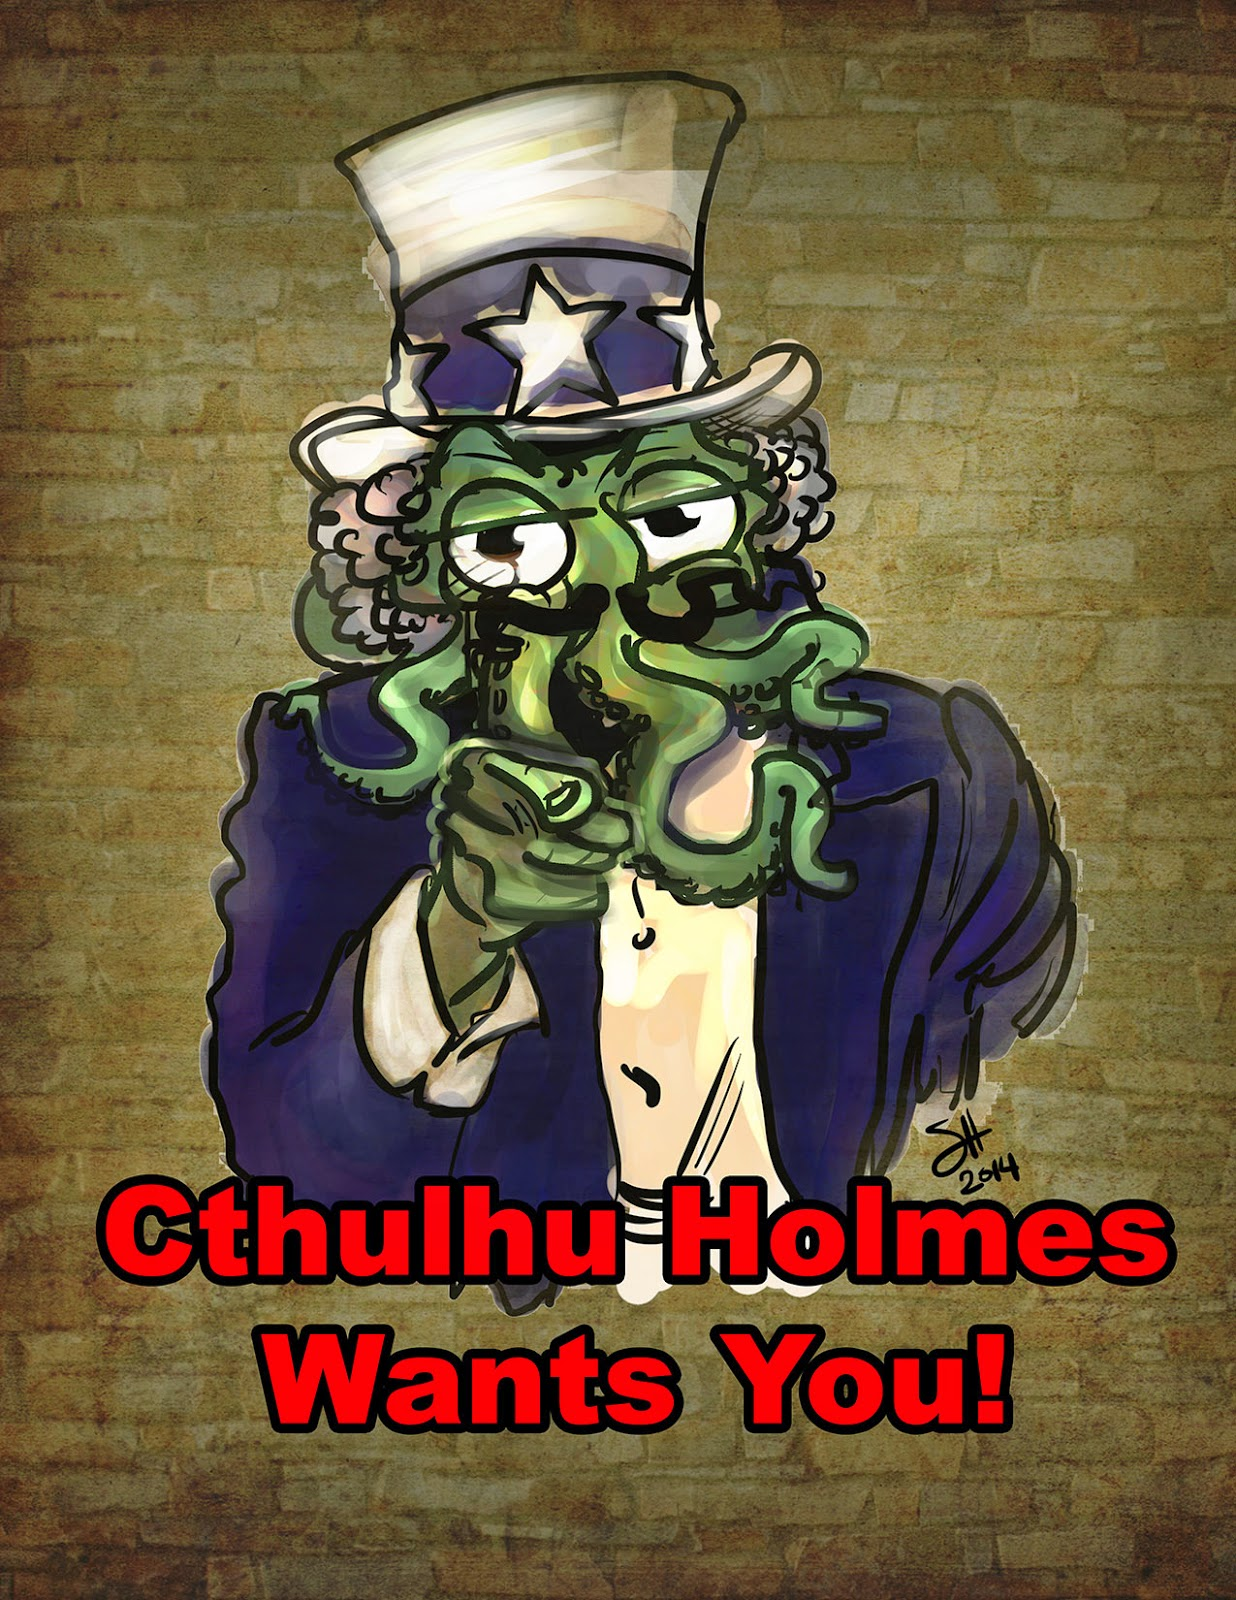 http://fundanything.com/en/campaigns/the-canny-cthulhu-holmes-vol-1